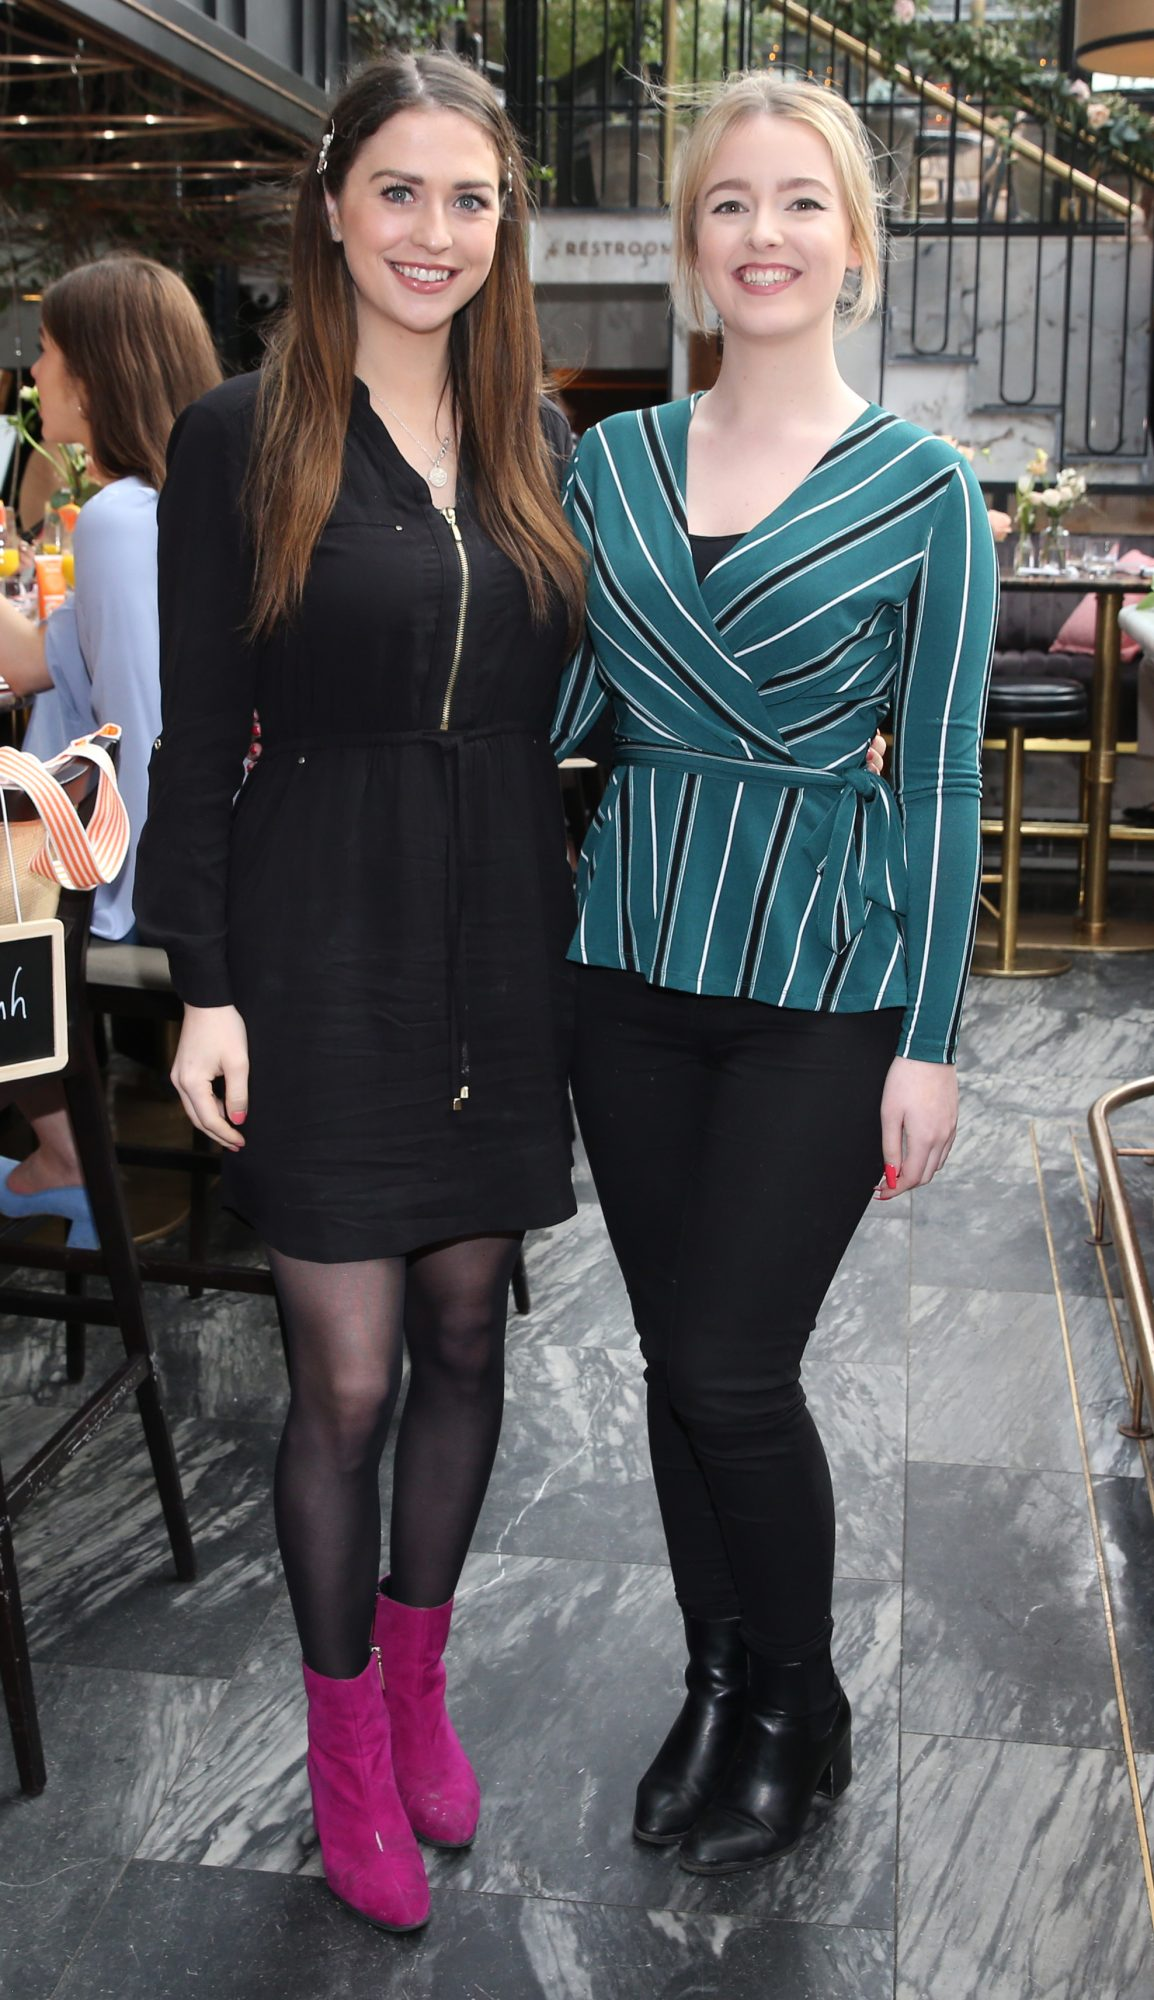 Pictured is Cara Crooke and Niamh Devereux at the launch of the new Avène Expert Suncare Range in The Grayson Dublin. The new range of suncare from the French brand is suitable for all skin types and includes a Sports Sun Cream, a City Shield BB Style High Protection Face Cream, two new SPF Body Sprays and a new Very High Protection Children's SPF. For more information visit www.avene.ie. Photo: Leon Farrell/Photocall Ireland.